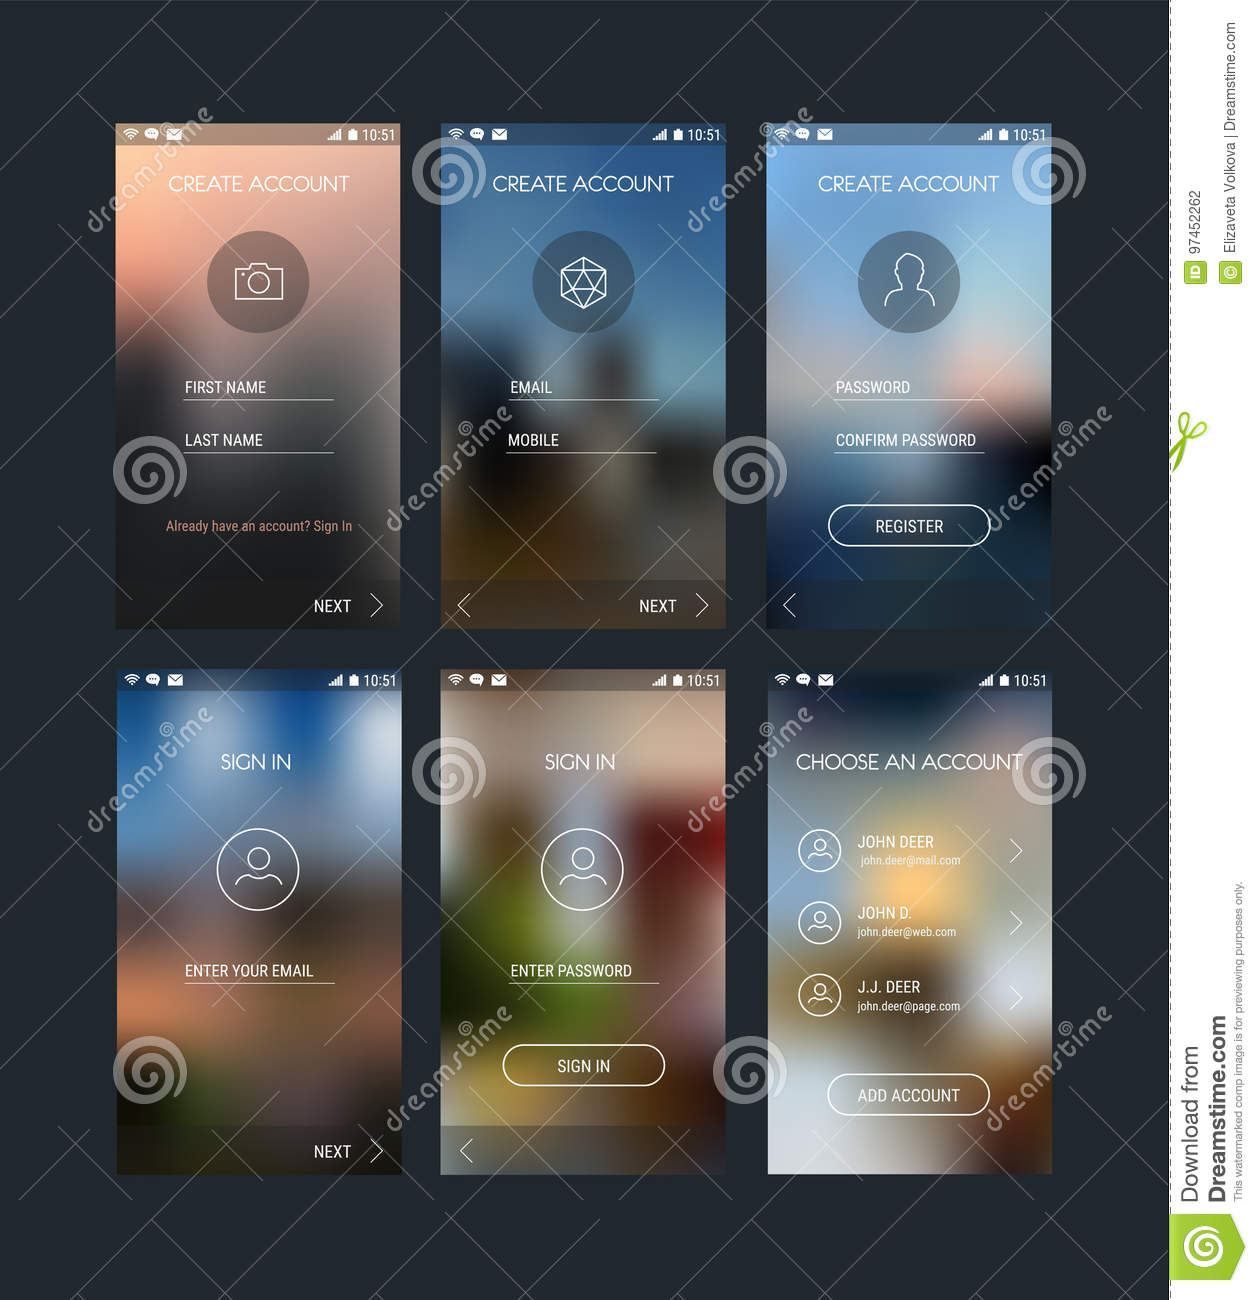 Mobile App UI Sign In And Sign Up Screens Mockup Kit Stock